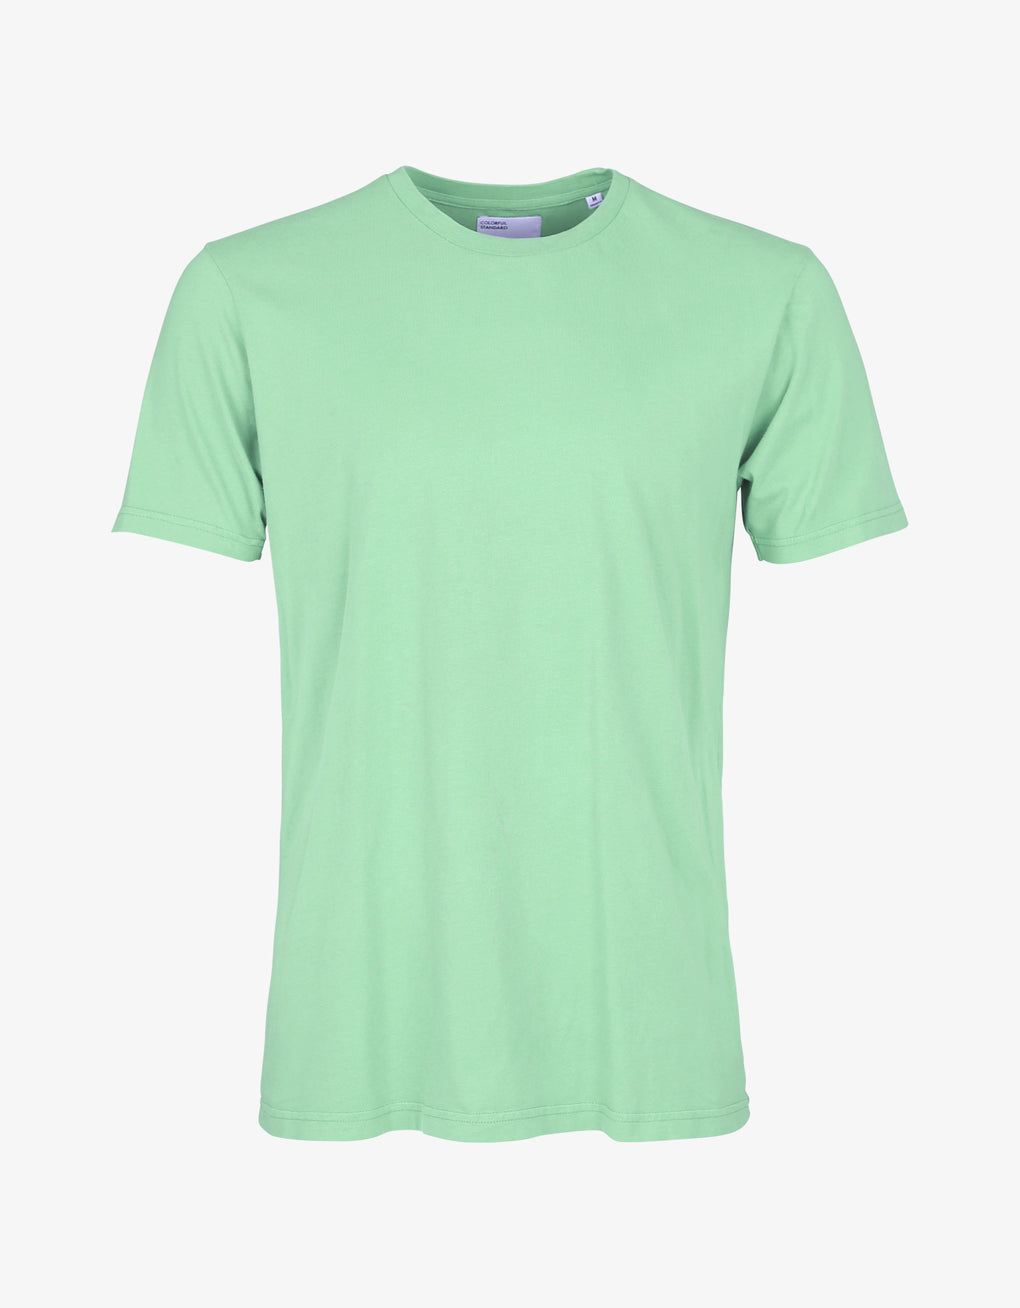 Colorful Standard Classic Organic Tee T-shirt Faded Mint